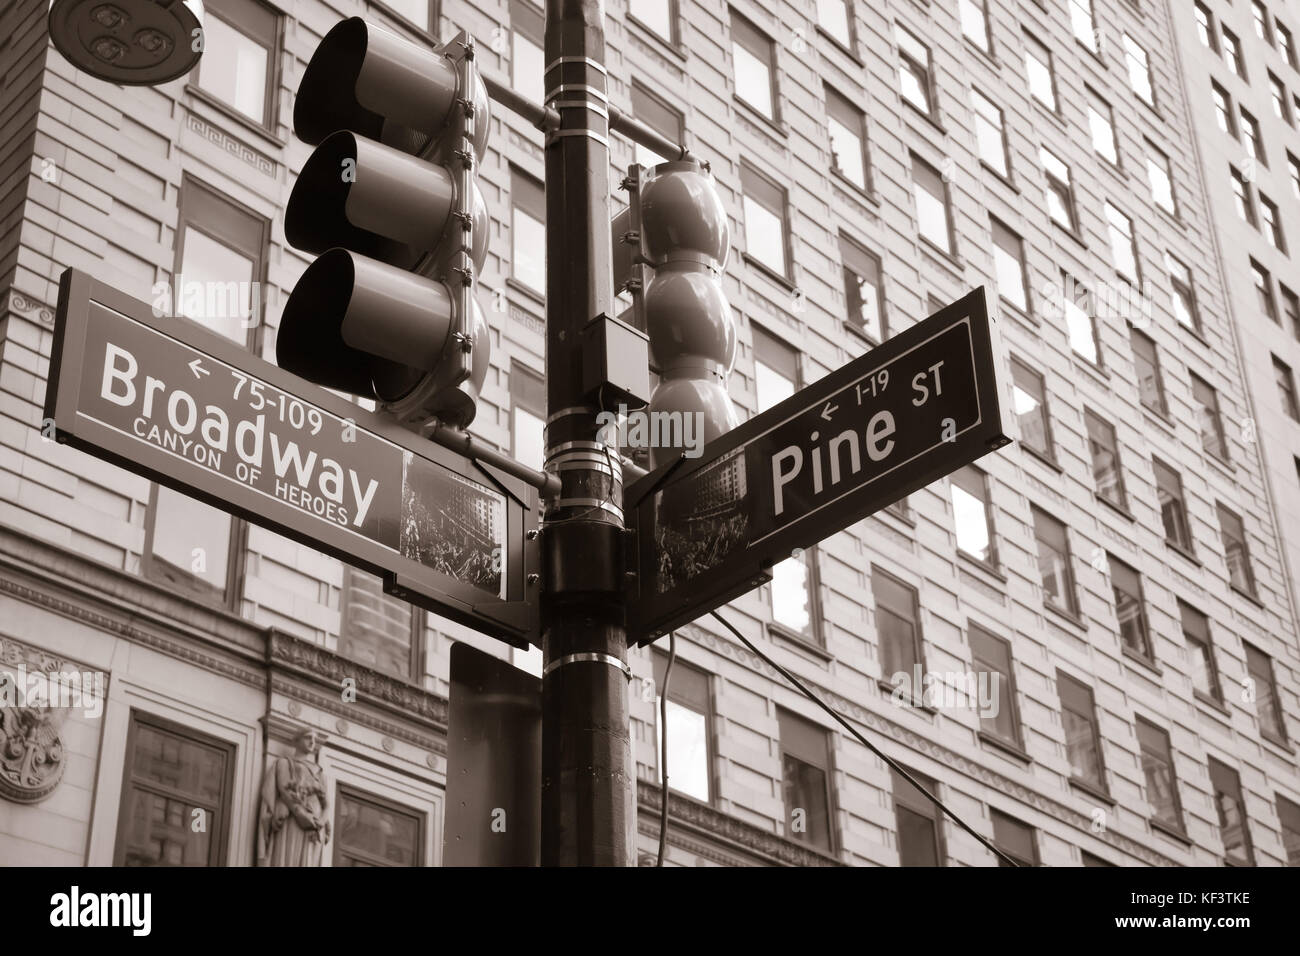 Broadway meets Pine Street, New York - Stock Image